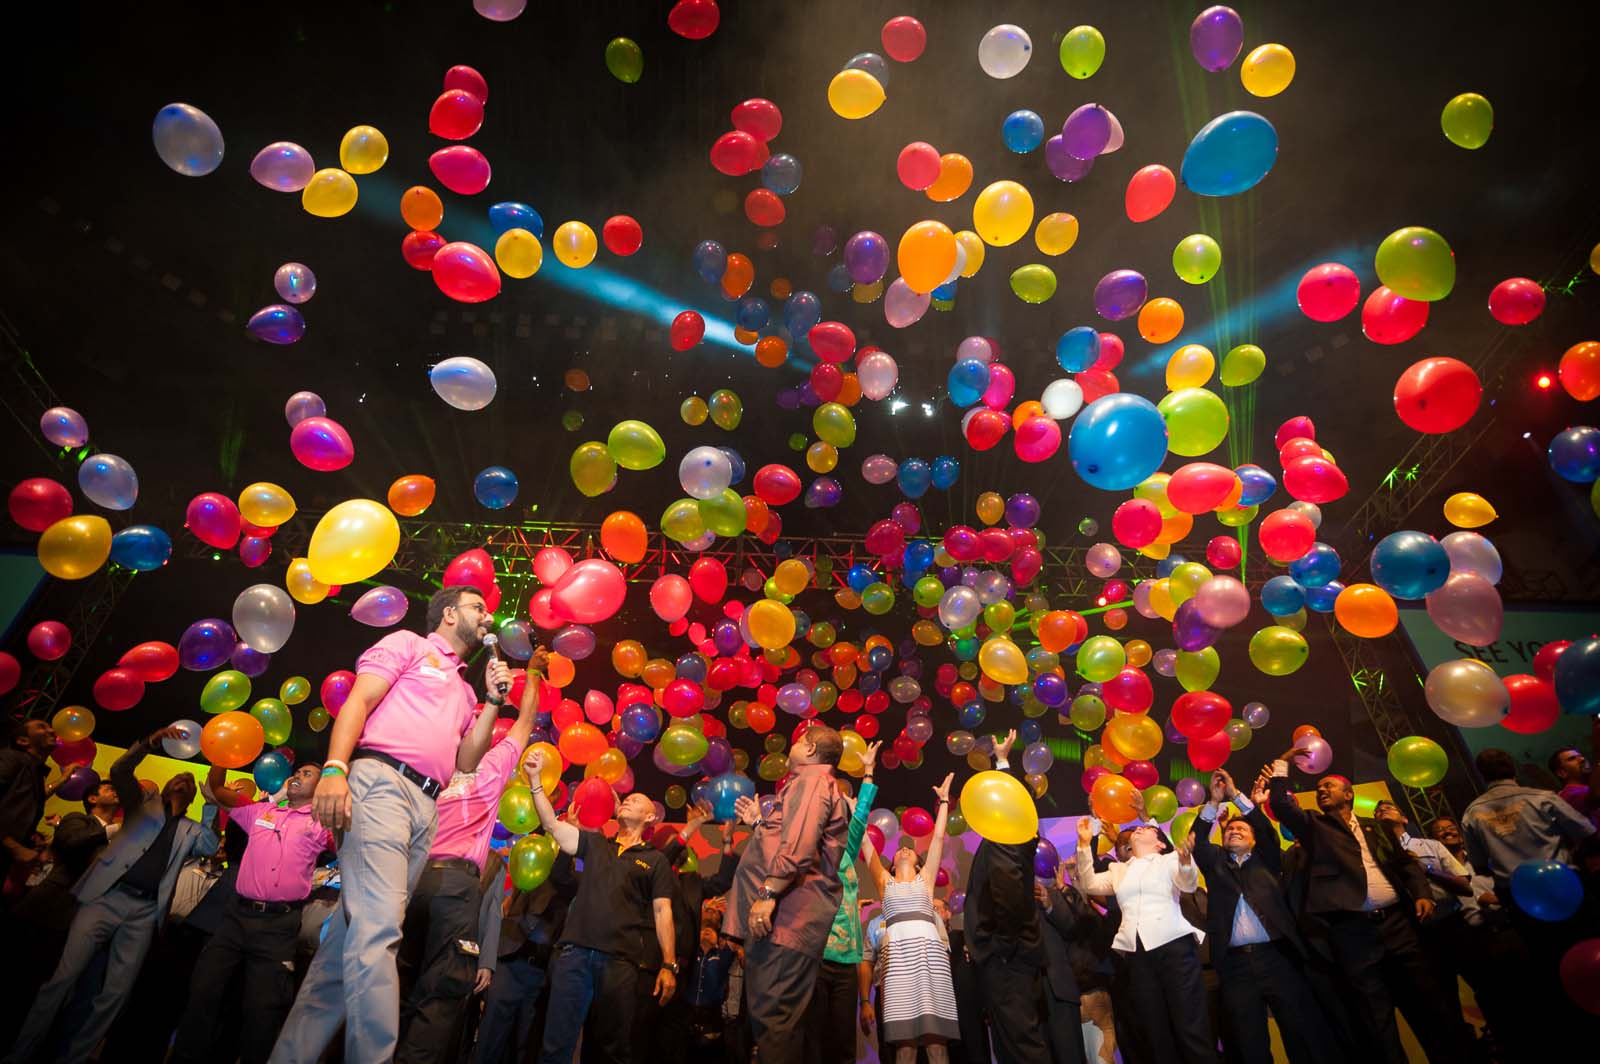 Best Corporate Event Photographer Thailand | Stage Baloons Photography Bangkok